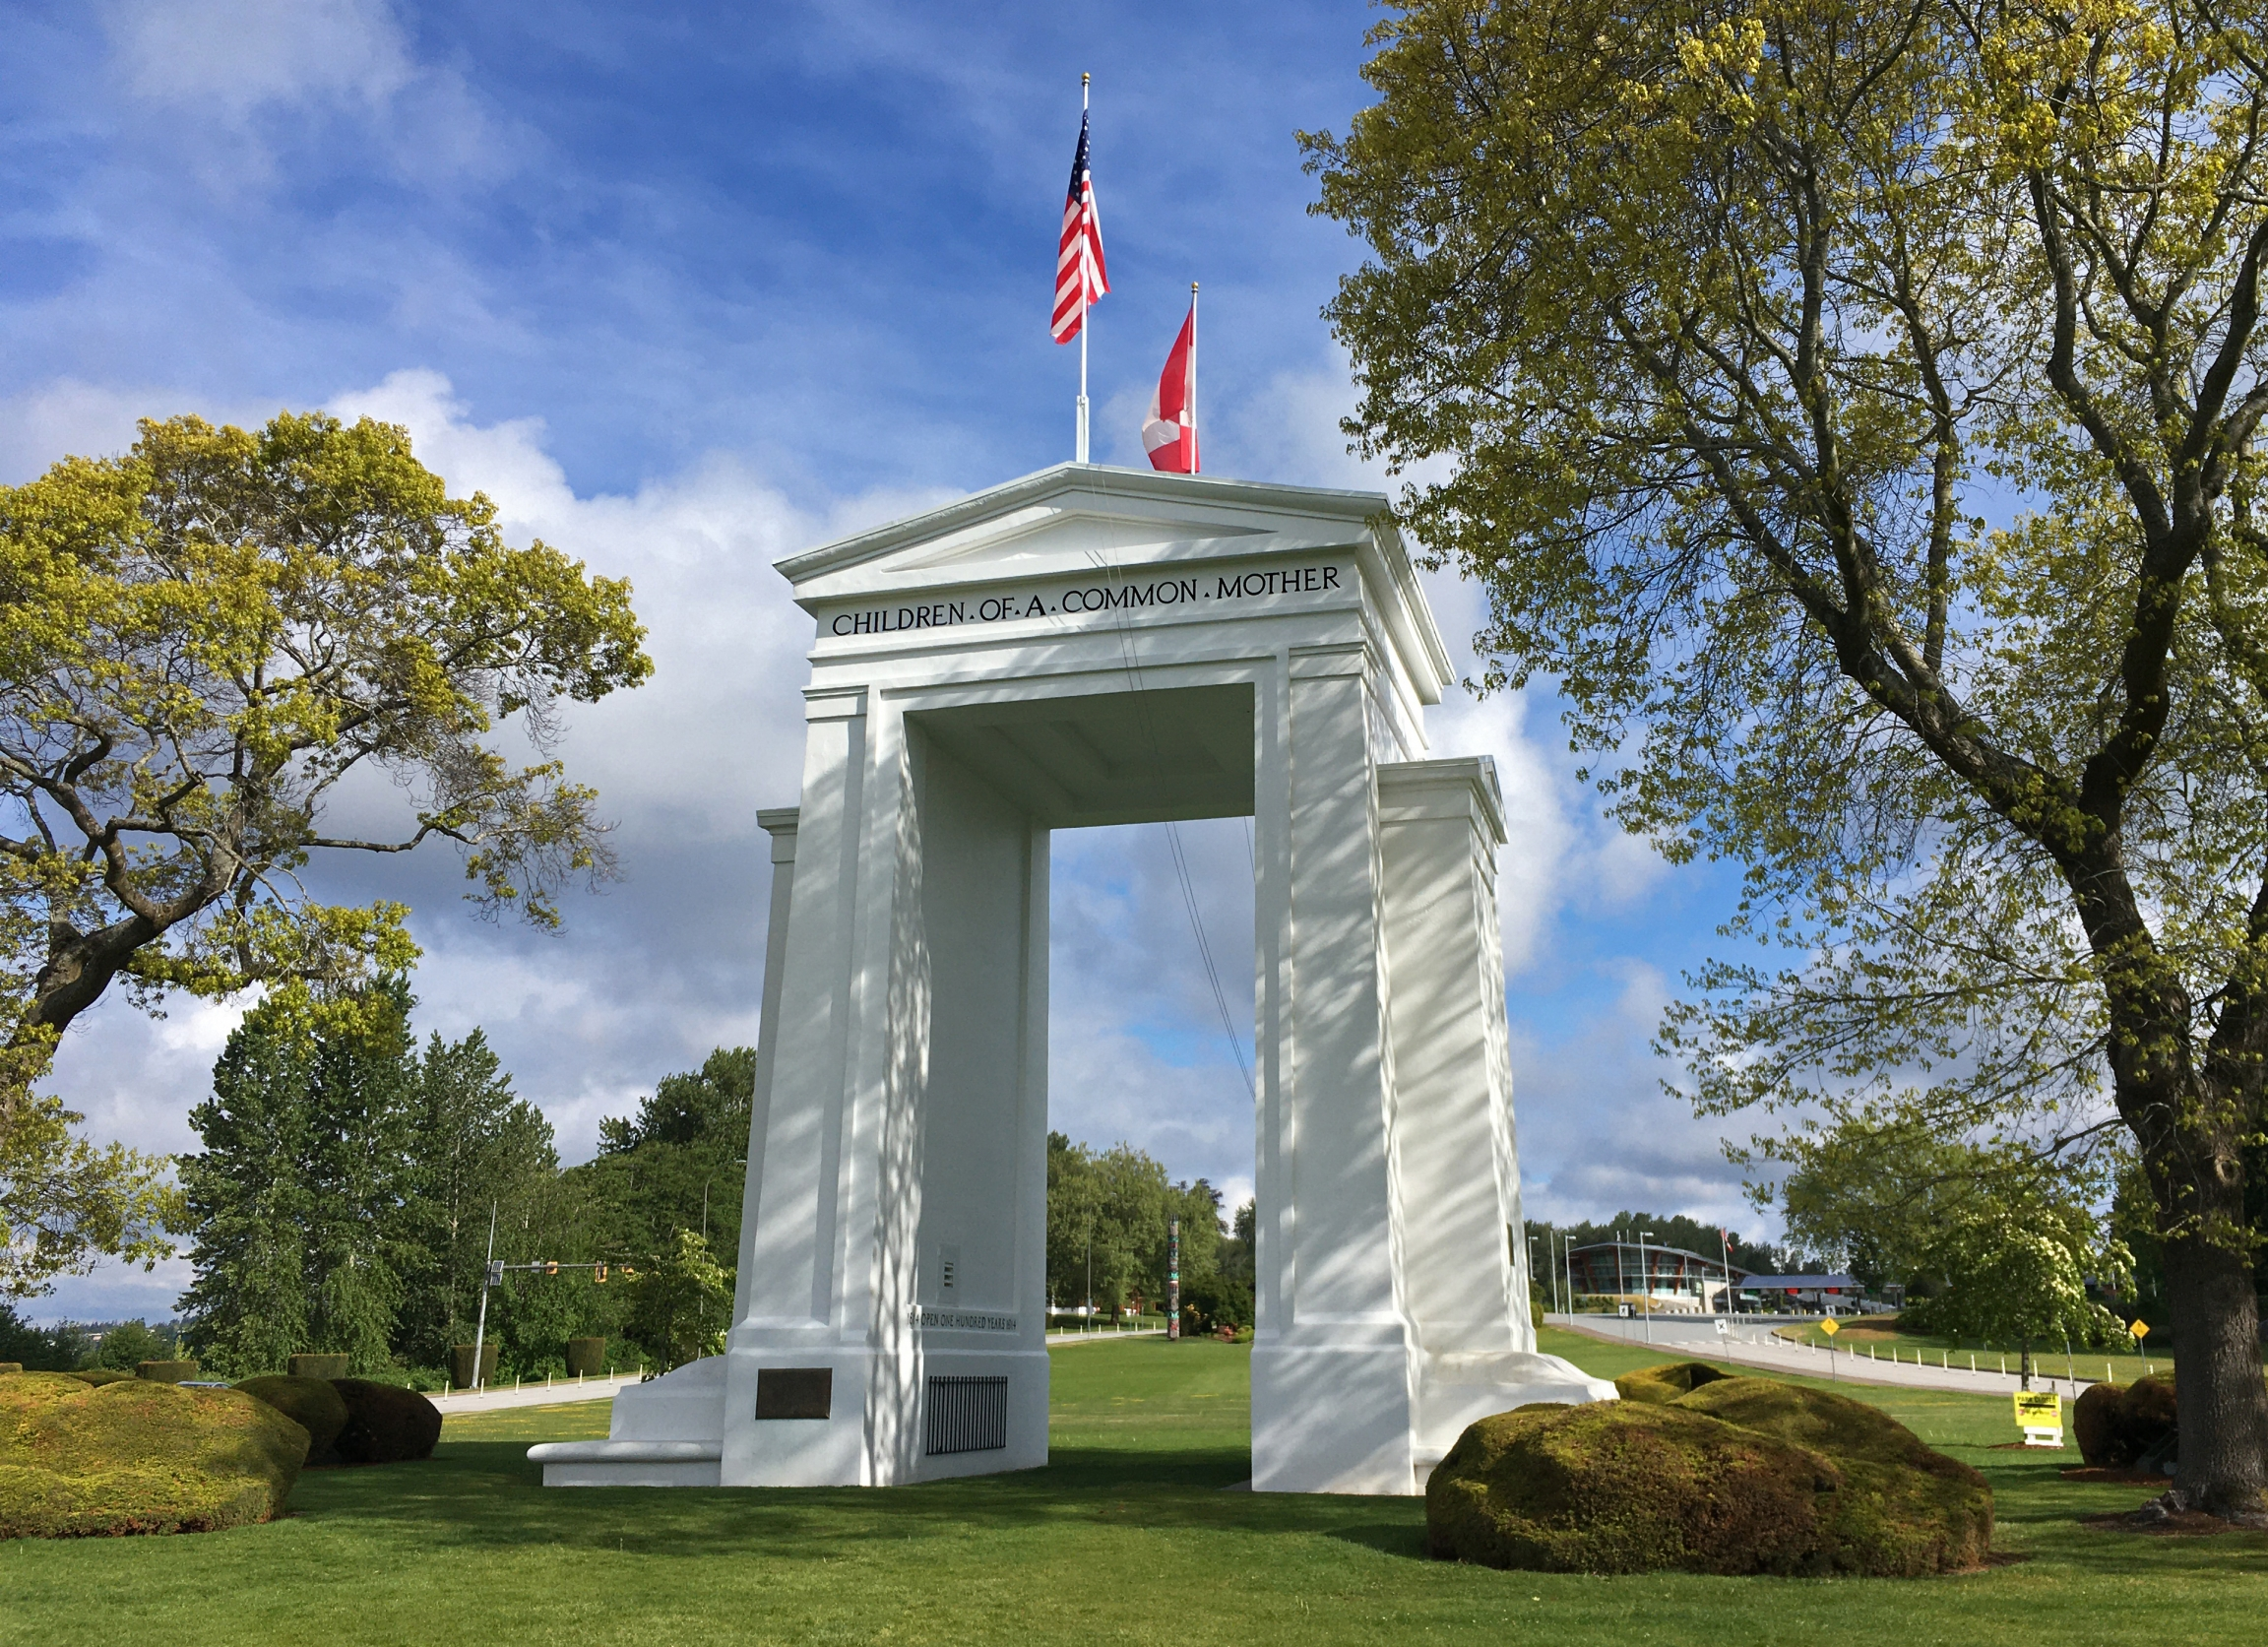 Peace Arch straddles the US-Canada border in Blaine, Washington, and Surrey, British Columbia.